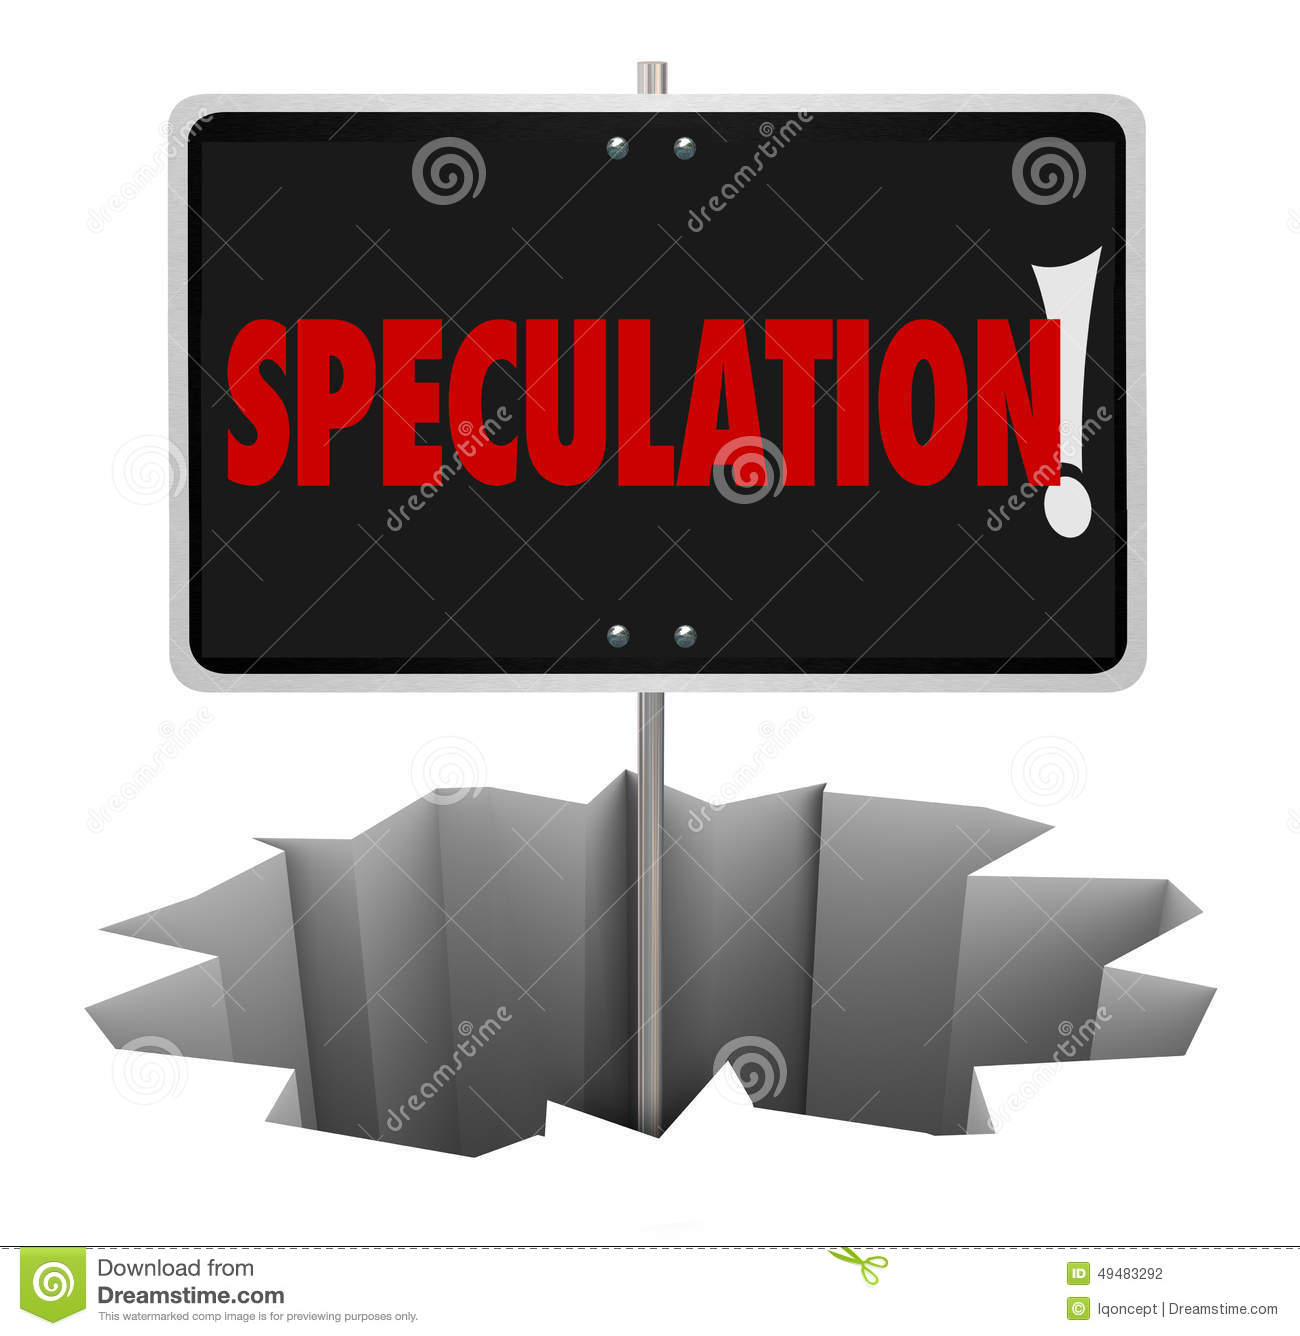 Speculation Danger Warning Sign Hole Bad Guessing Wrong Stock.